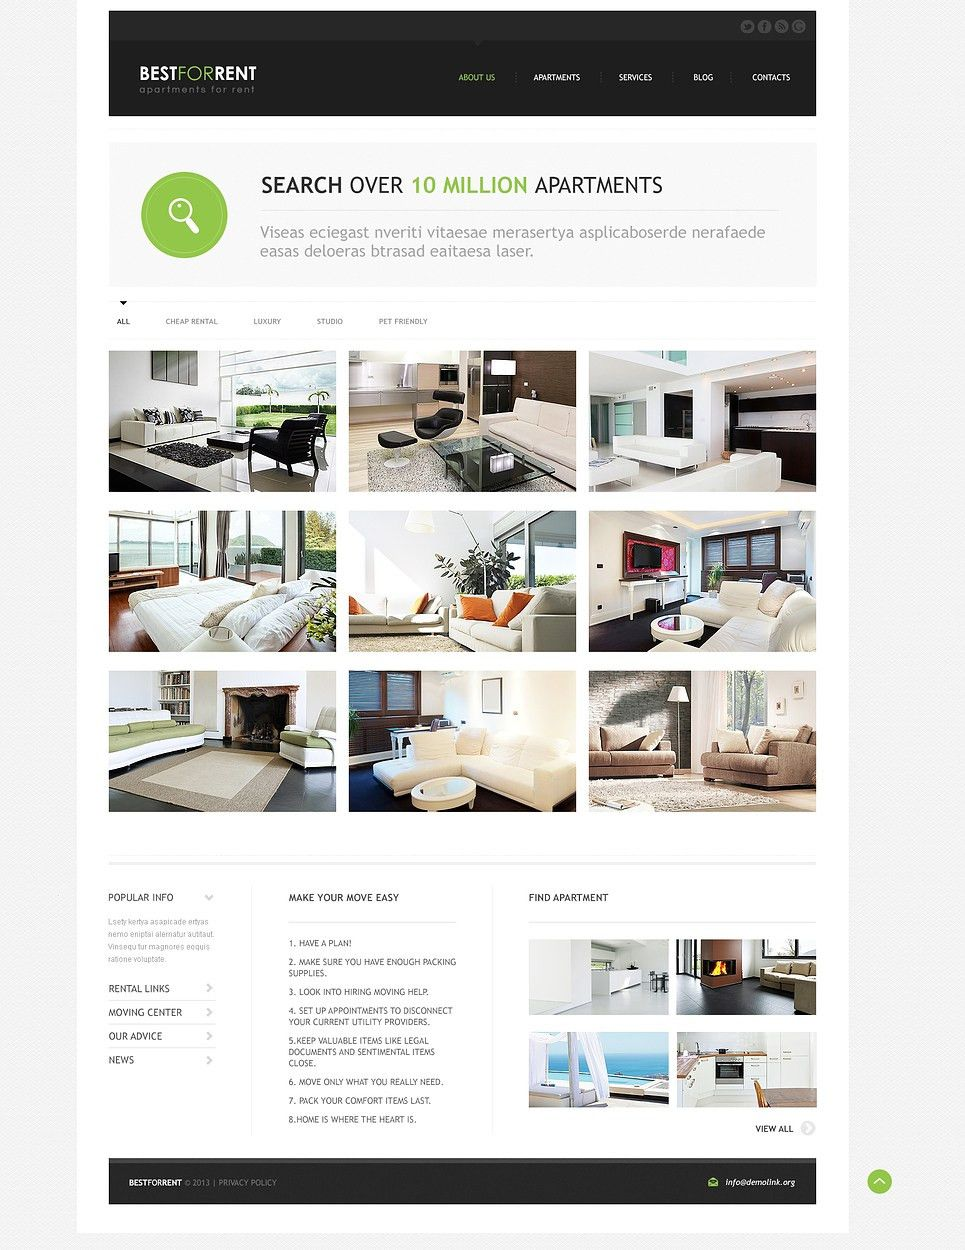 Apartments for Rent Joomla Template #46371